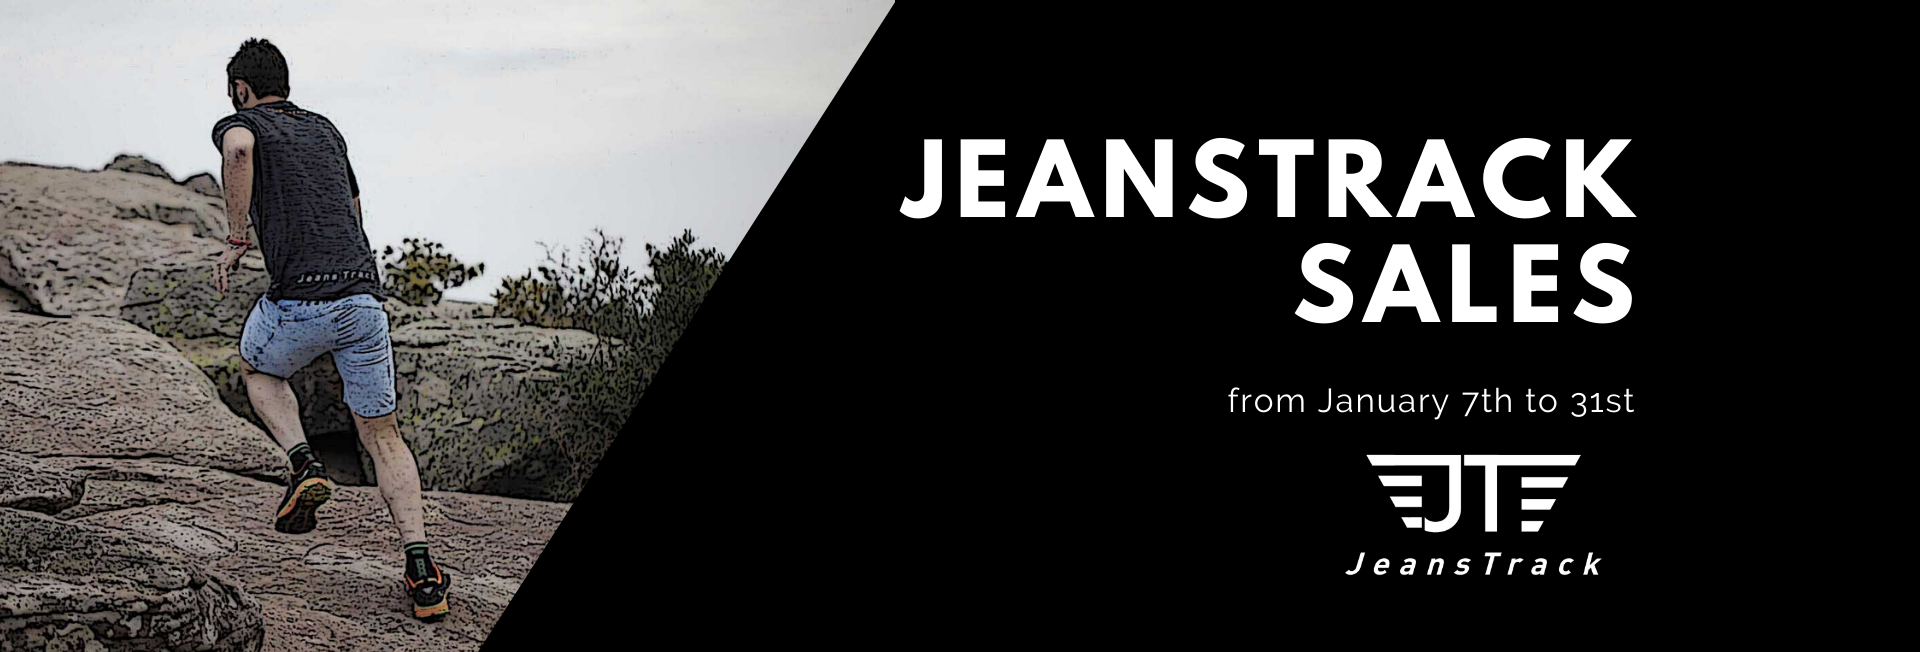 Sales in all clothes for mtb, bike, climbing, boulder, urban cycling. jeanstrack